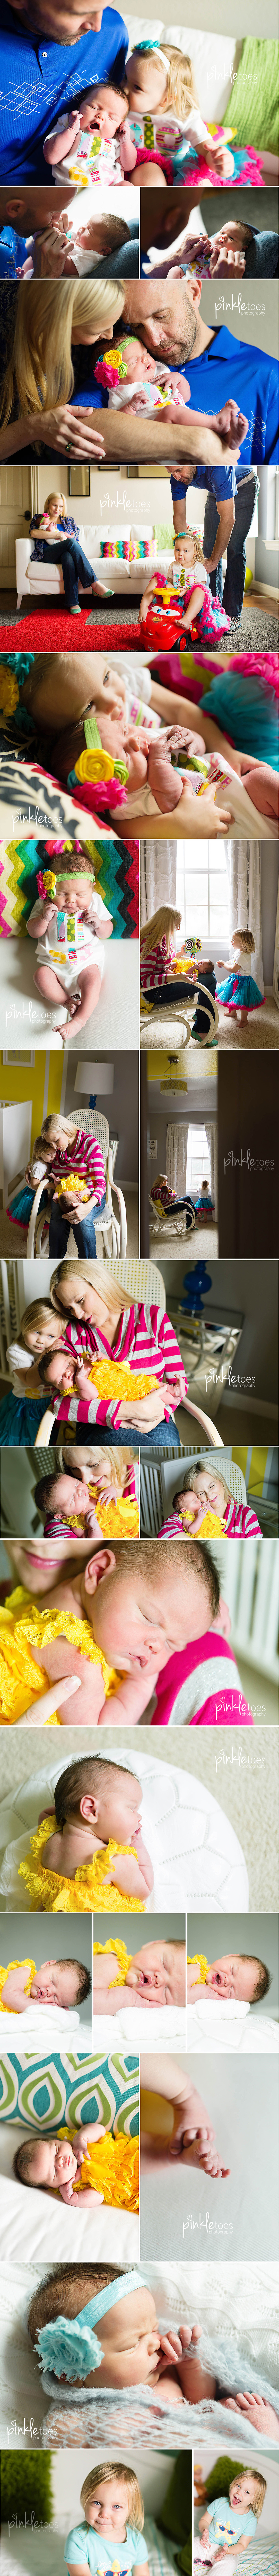 at-best-award-winning-austin-newborn-baby-photographer